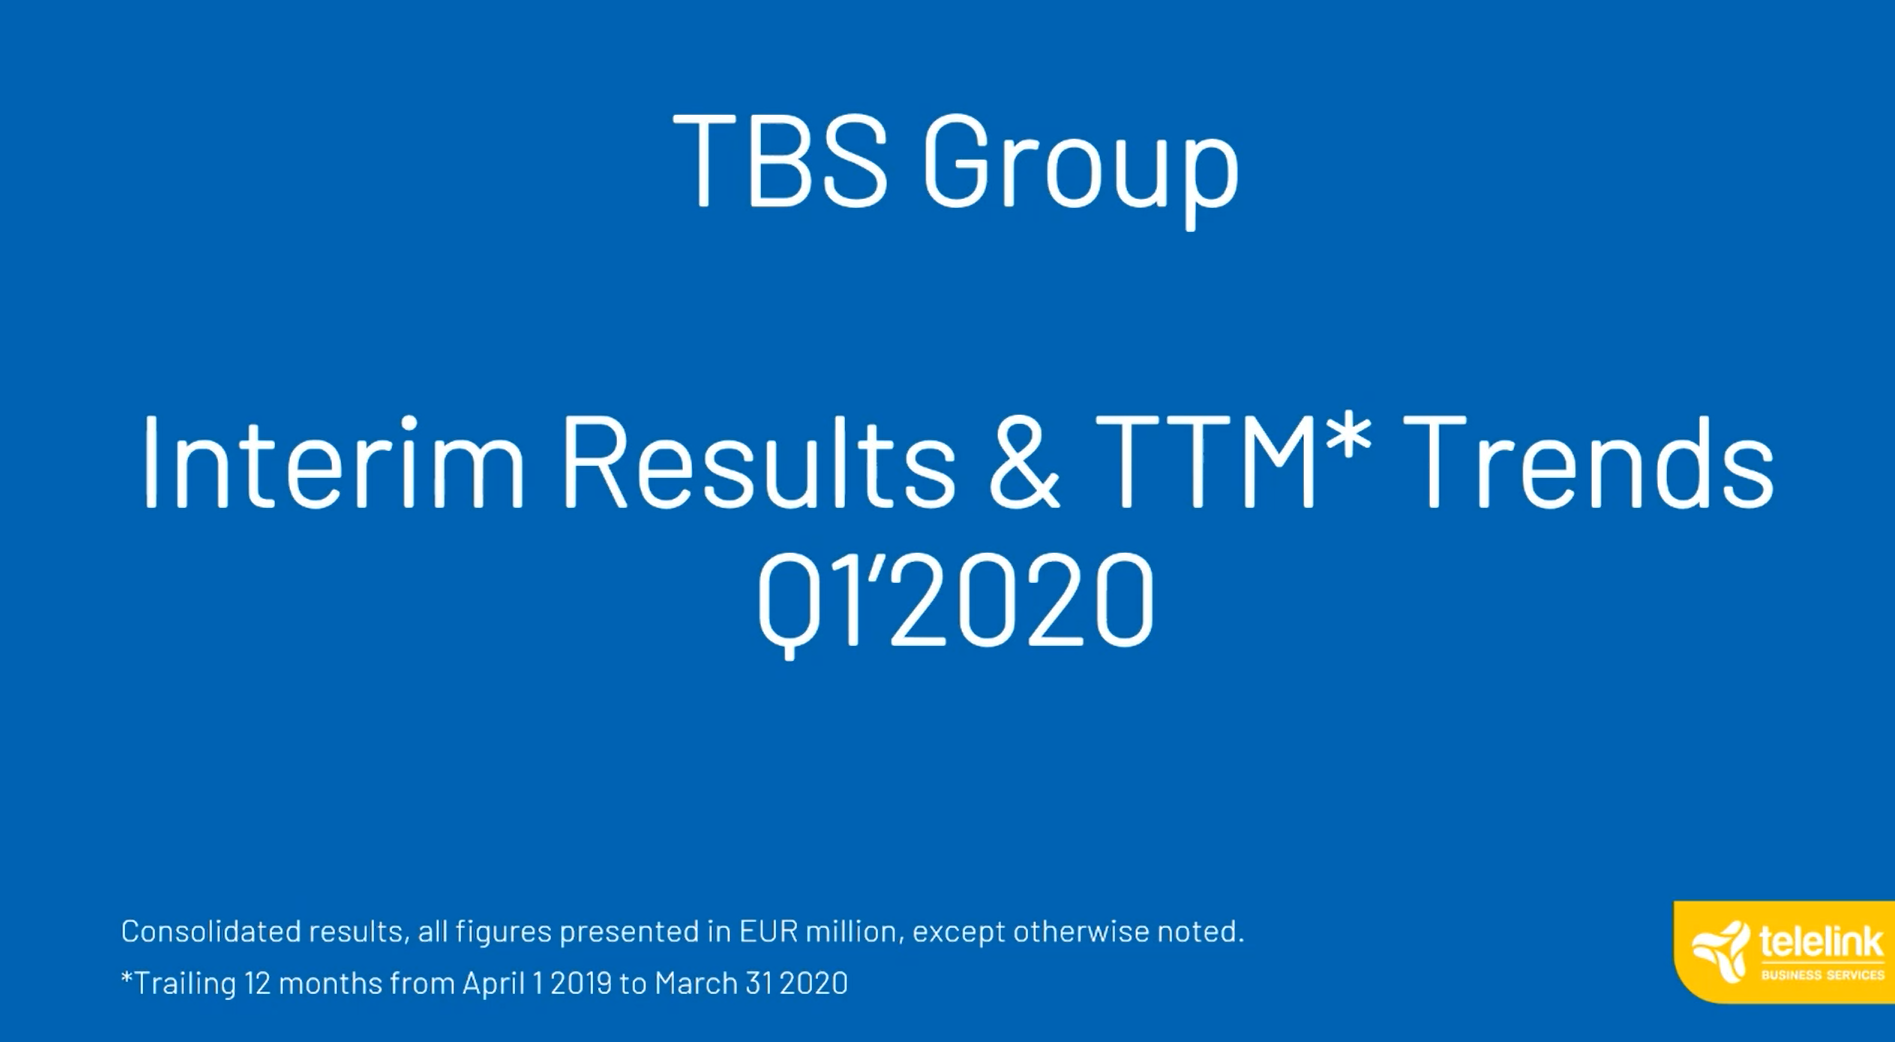 Digital Event | TBS Group: Q1 2020 Financials Overview and Investor Q&A 11.06.2020